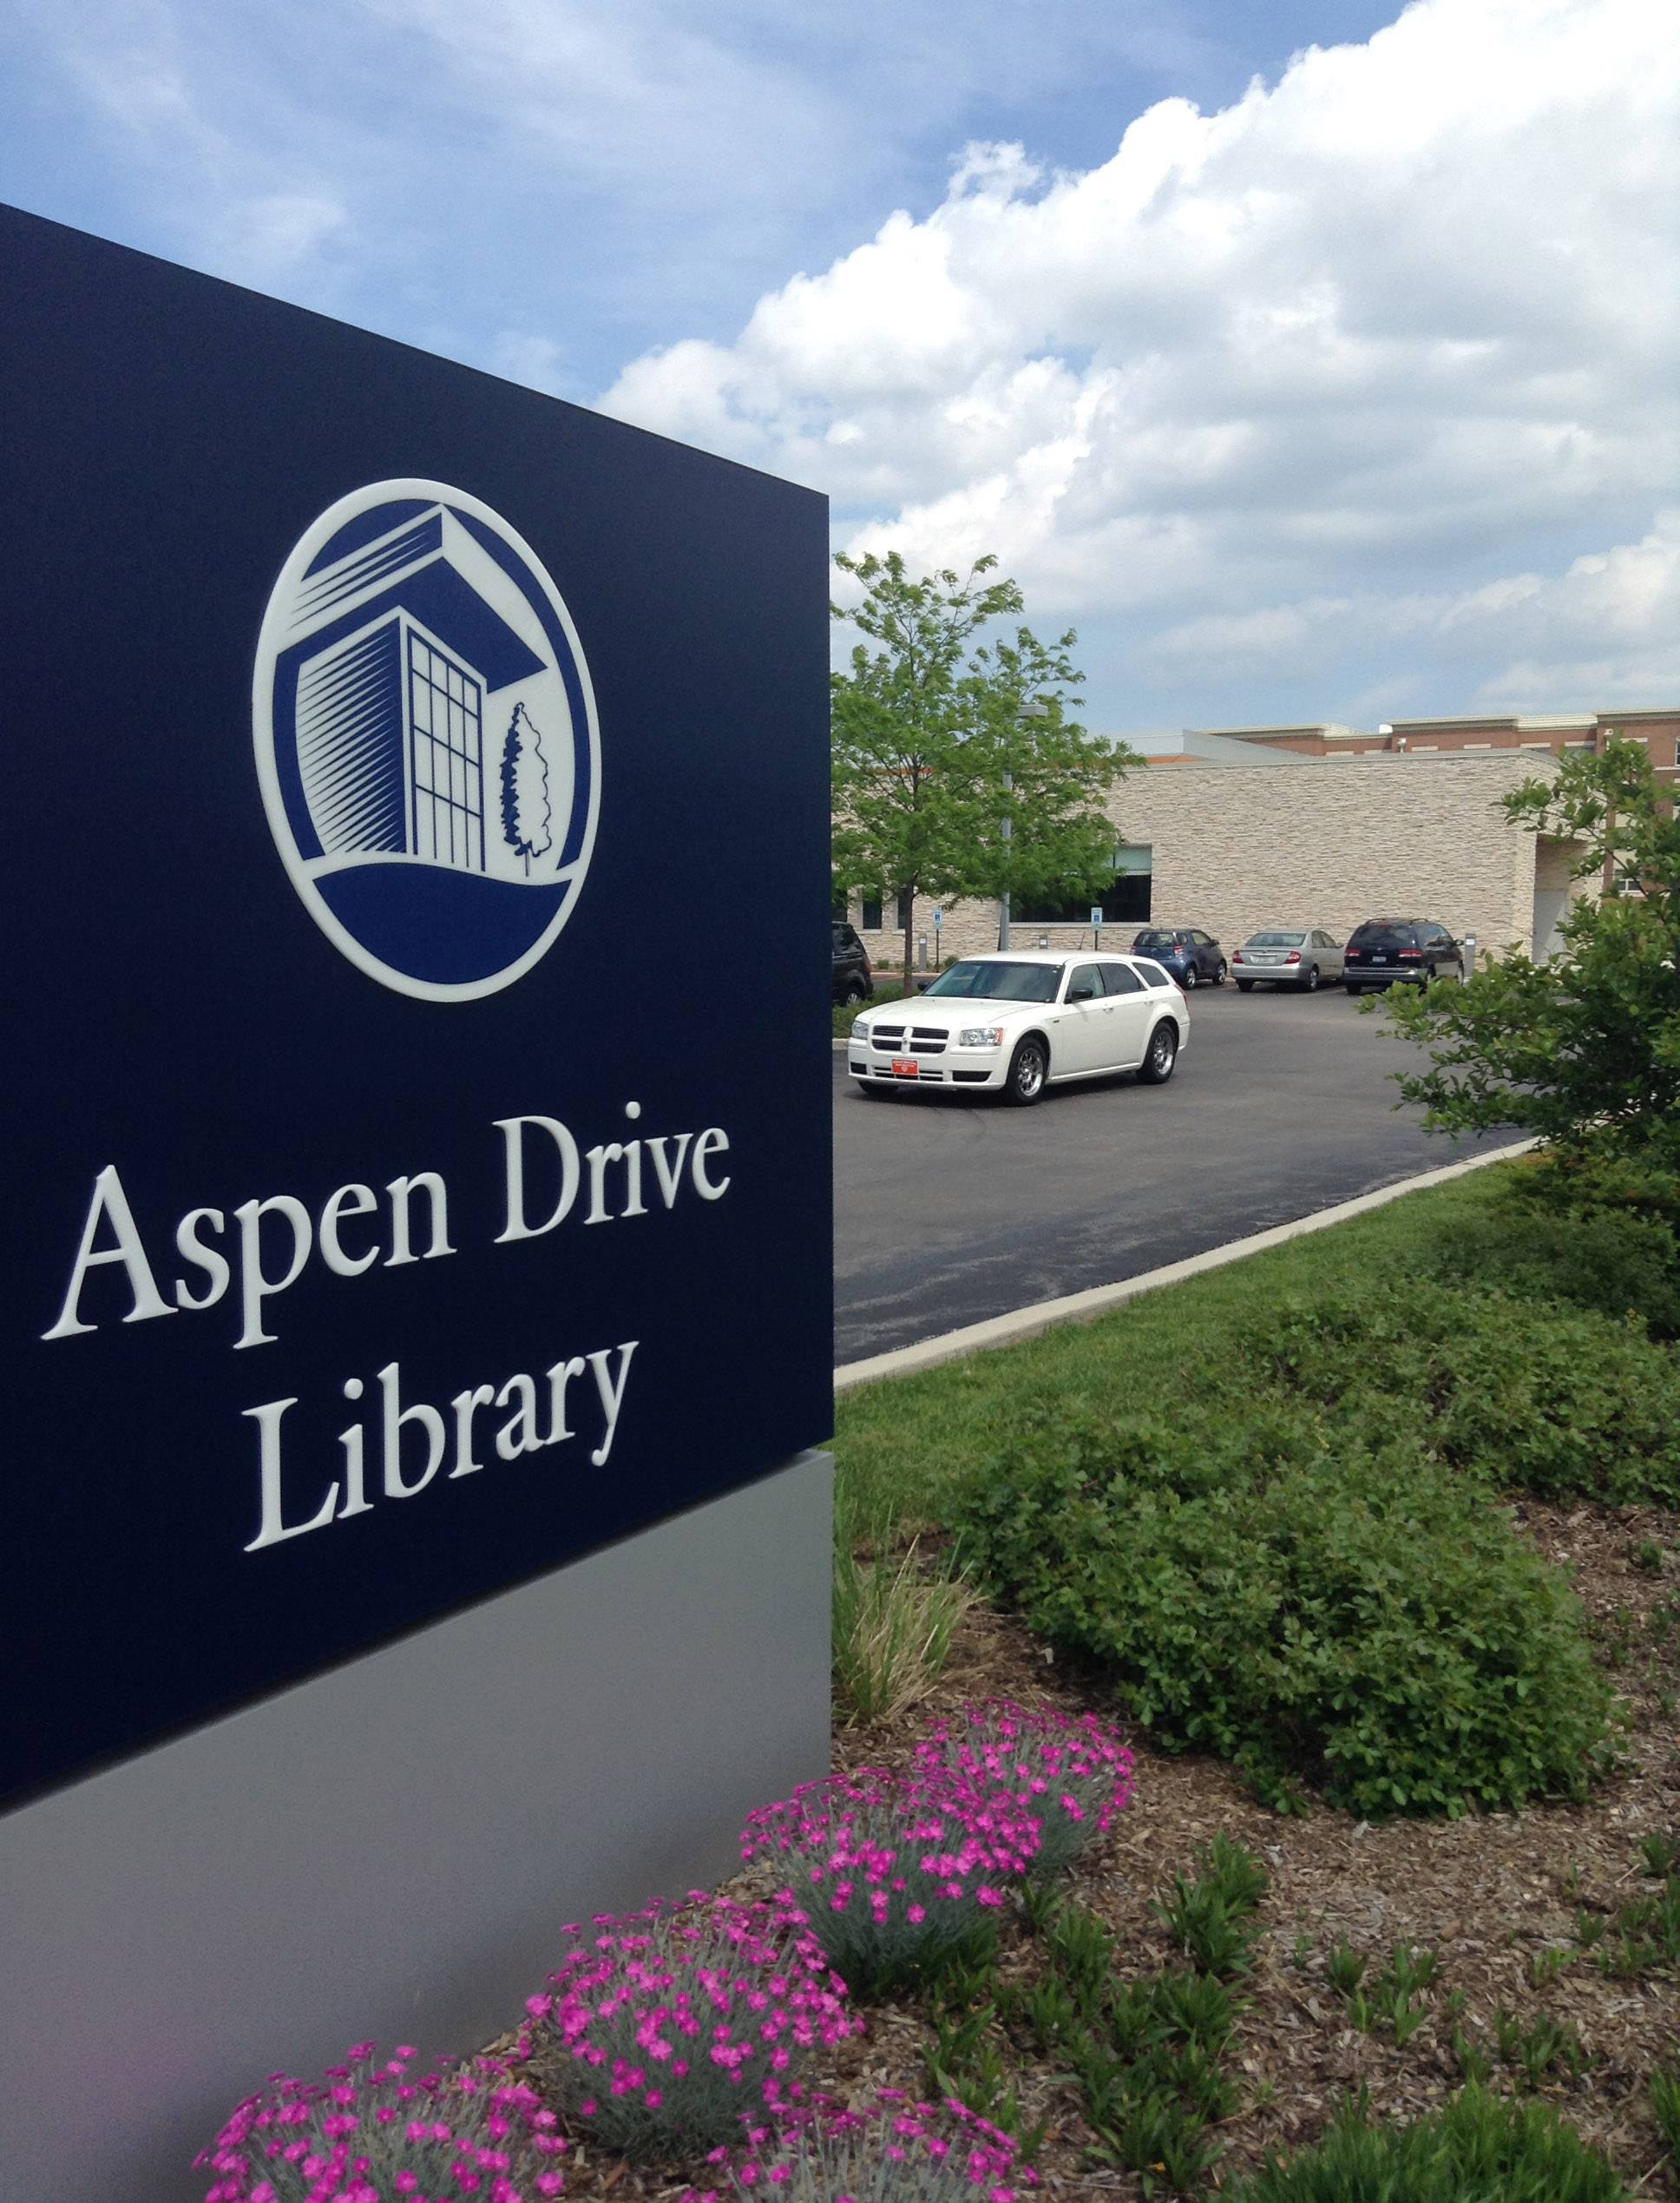 Progress, next steps expected for library, park plans in Vernon Hills